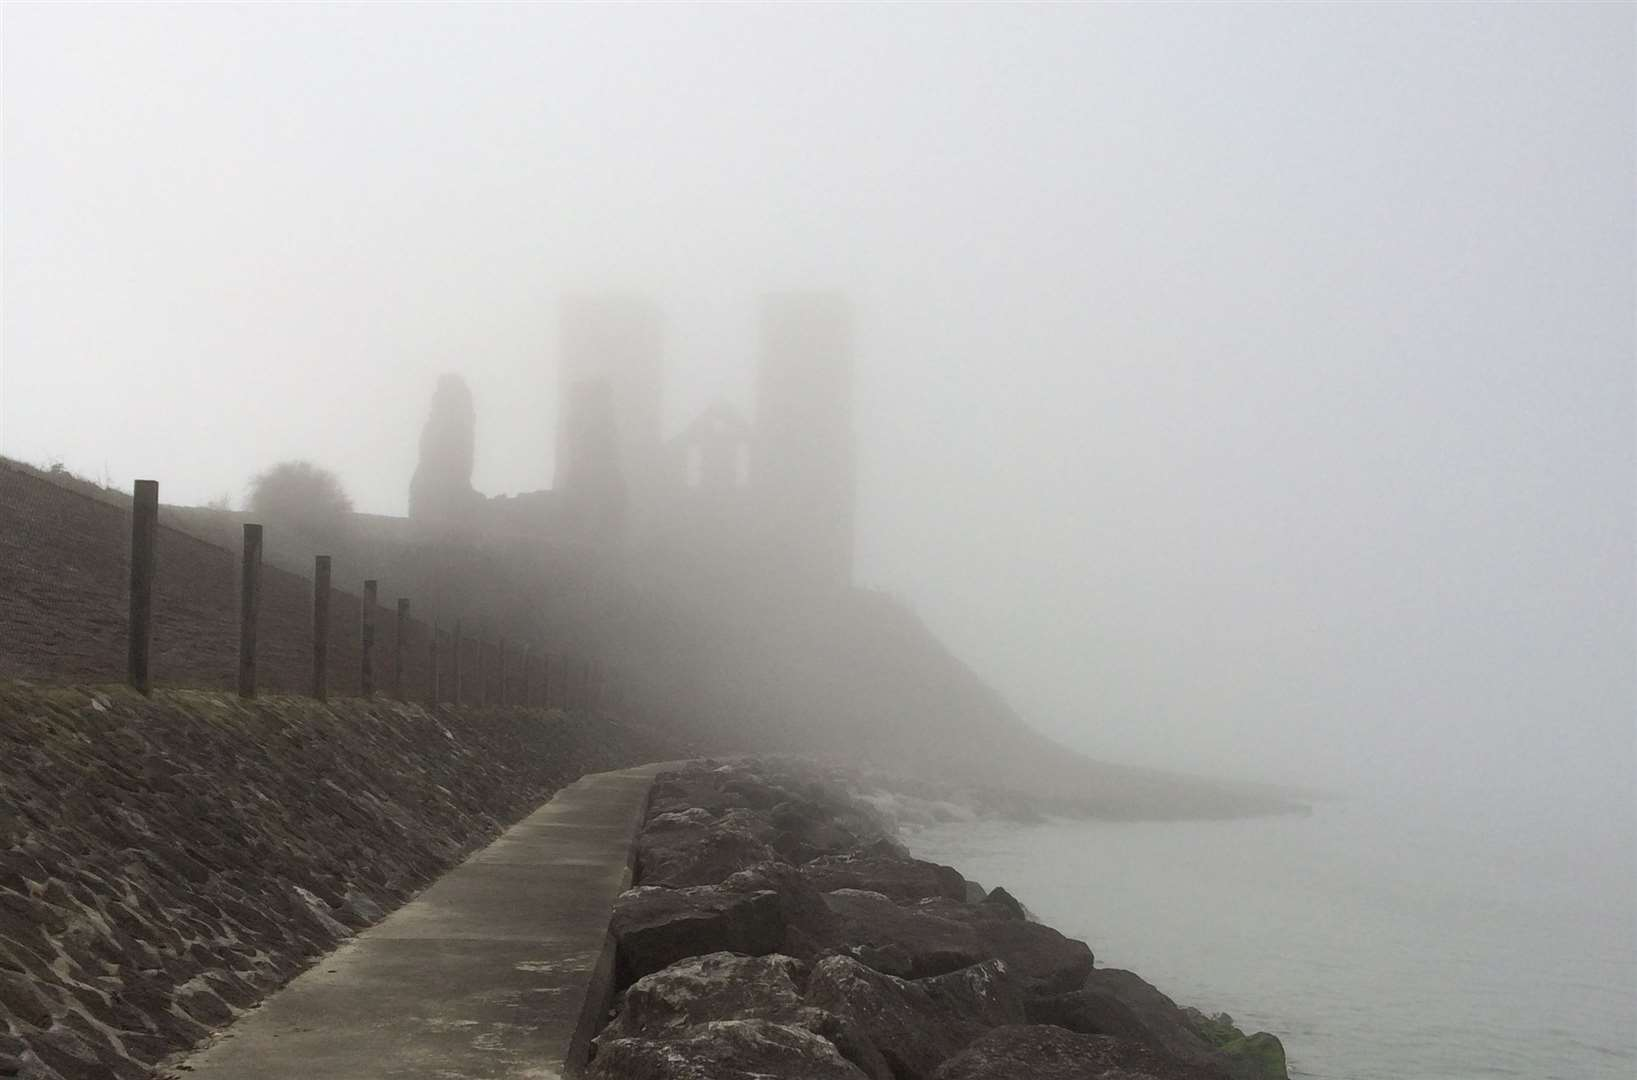 Cries are said to haunt Reculver. Pic: Lynette Coleman